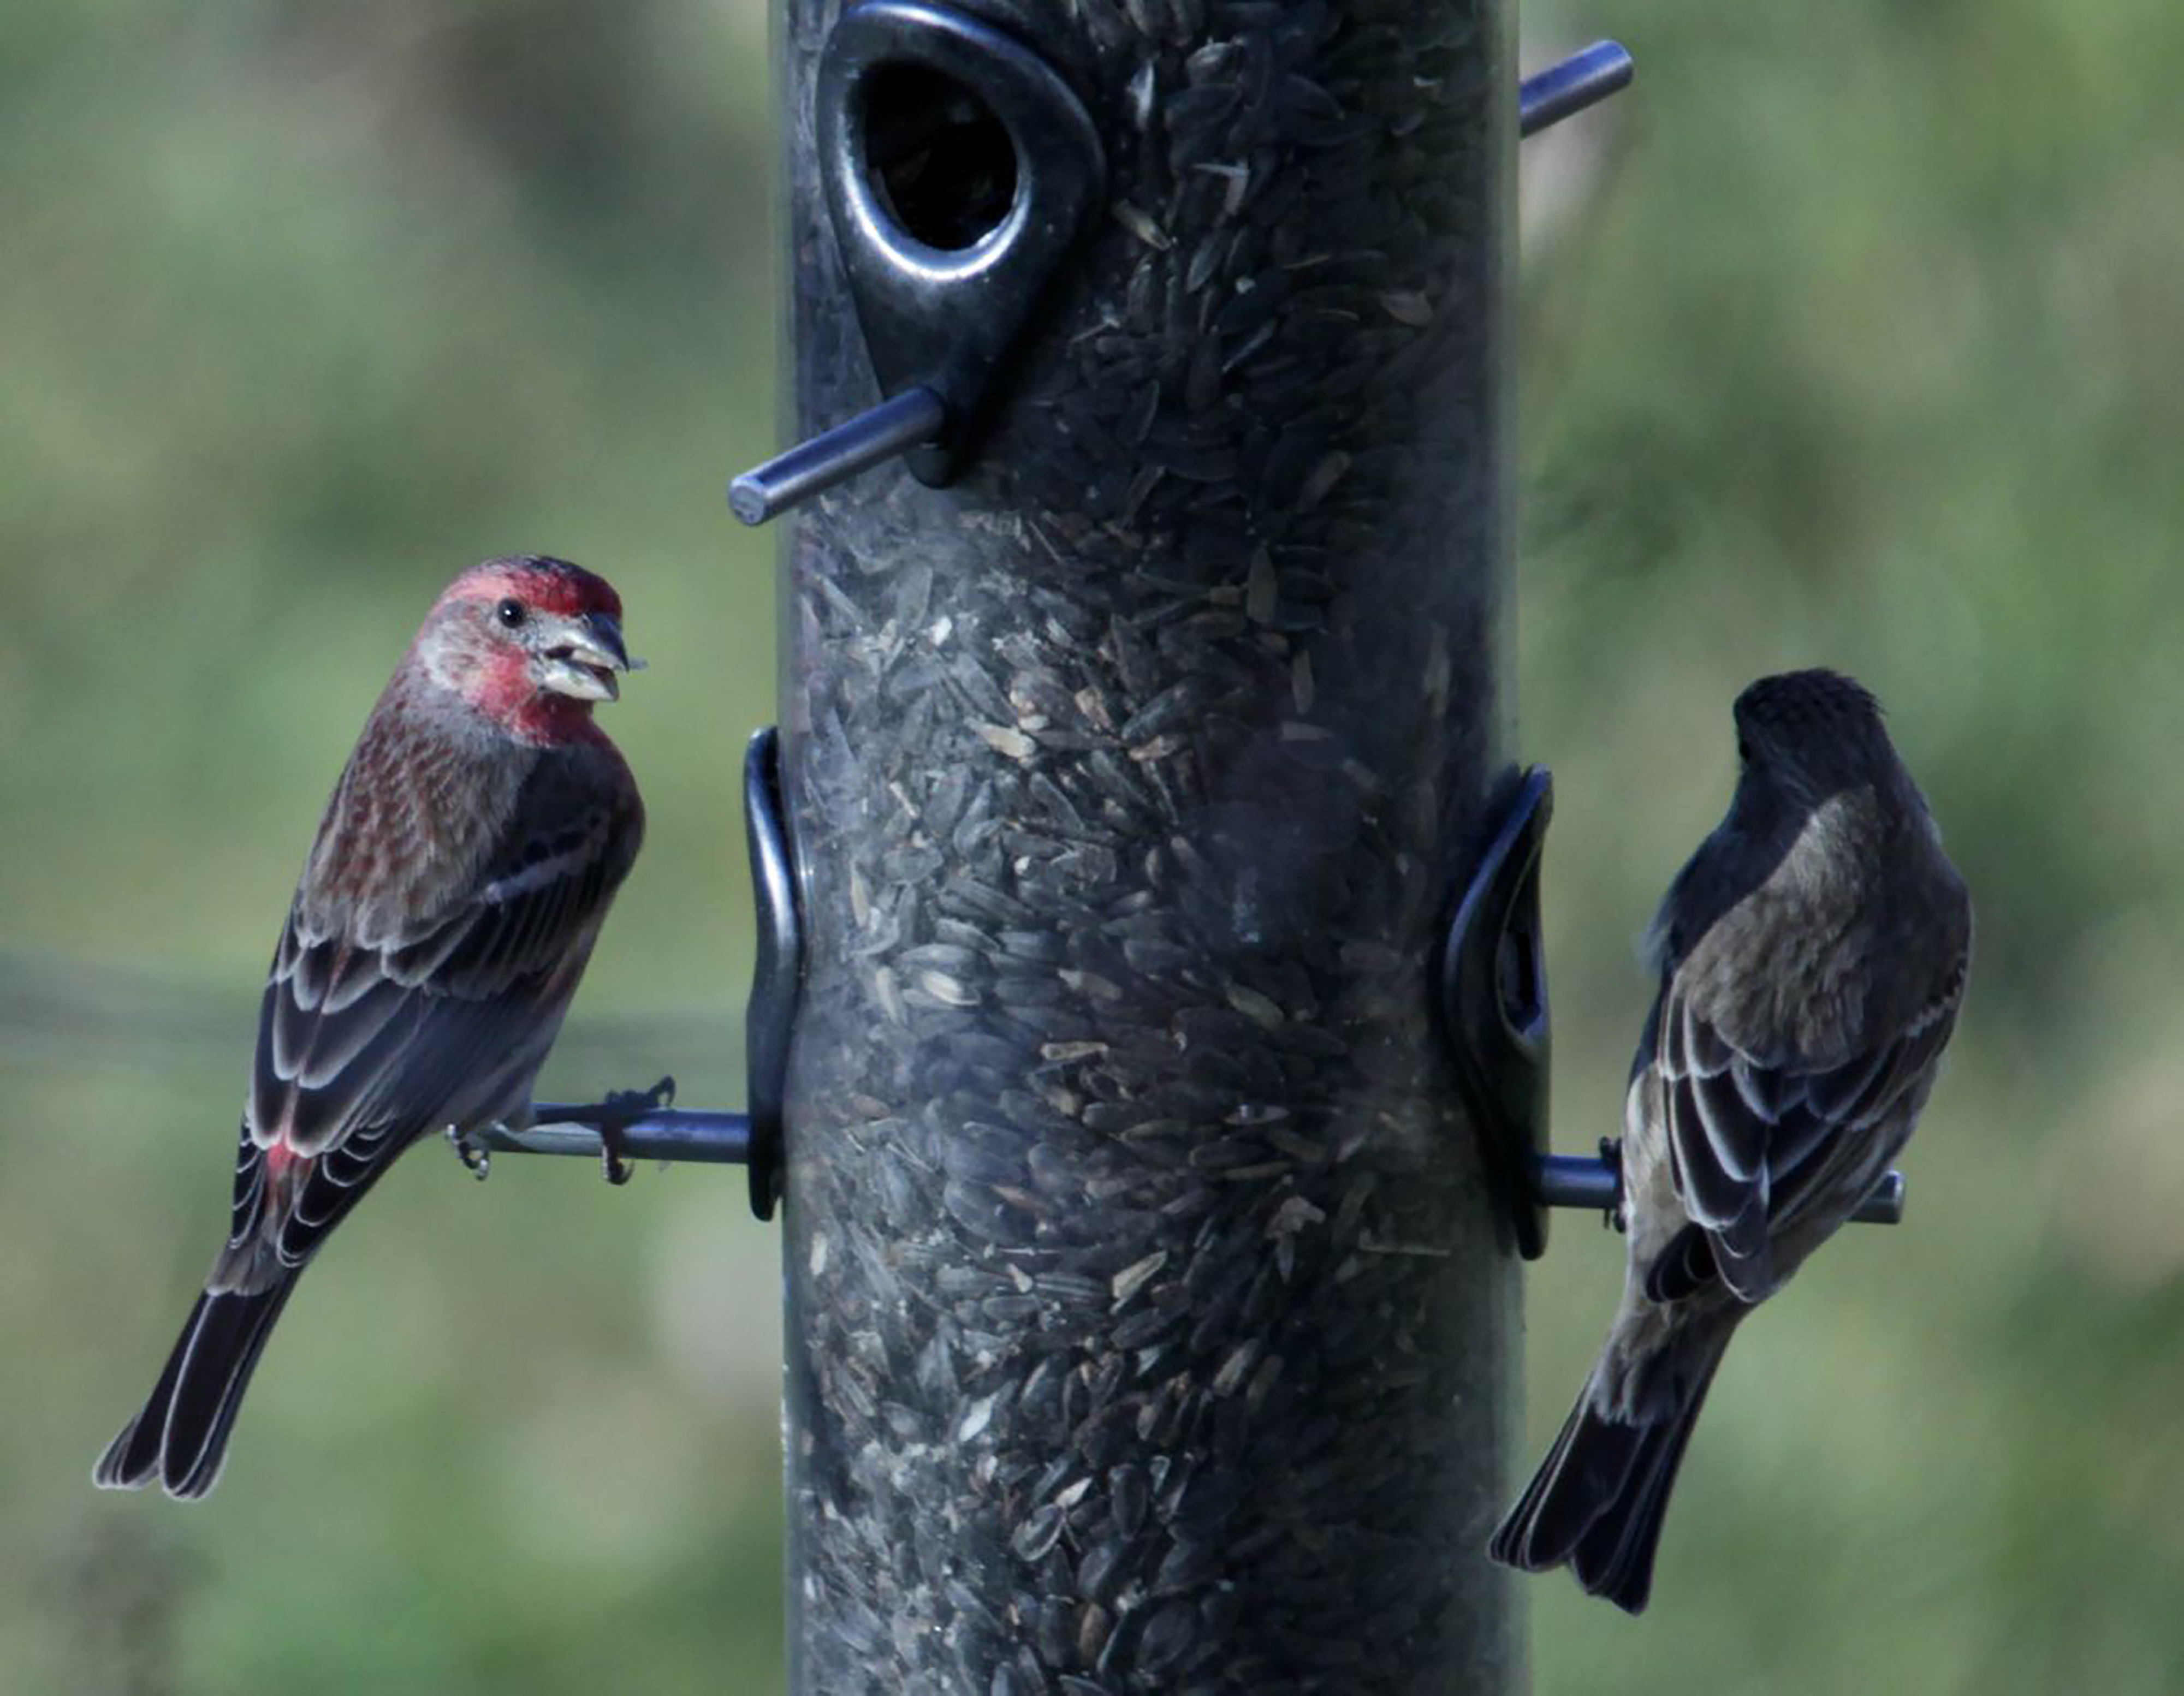 birds that eat at feeders more likely to get sick spread disease